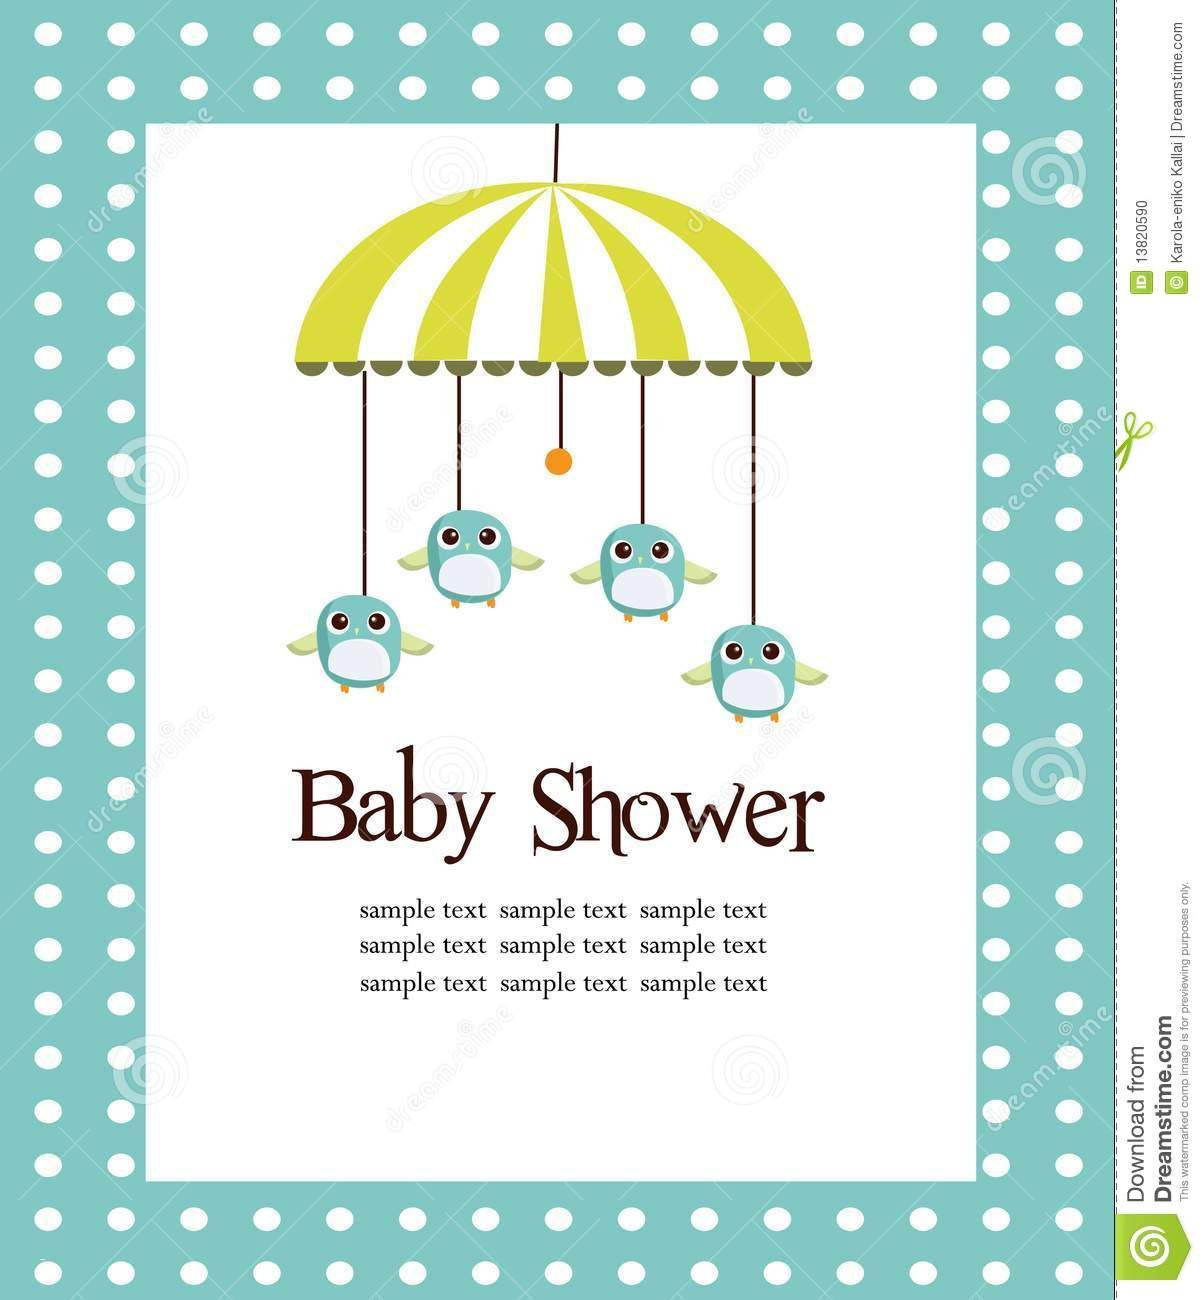 Full Size of Baby Shower:graceful Baby Shower Cards Image Designs Baby Shower Cards Arreglos Baby Shower Baby Shower Venue Ideas Elegant Baby Shower Arreglos De Baby Shower Baby Shower Diaper Game Baby Shower Menu